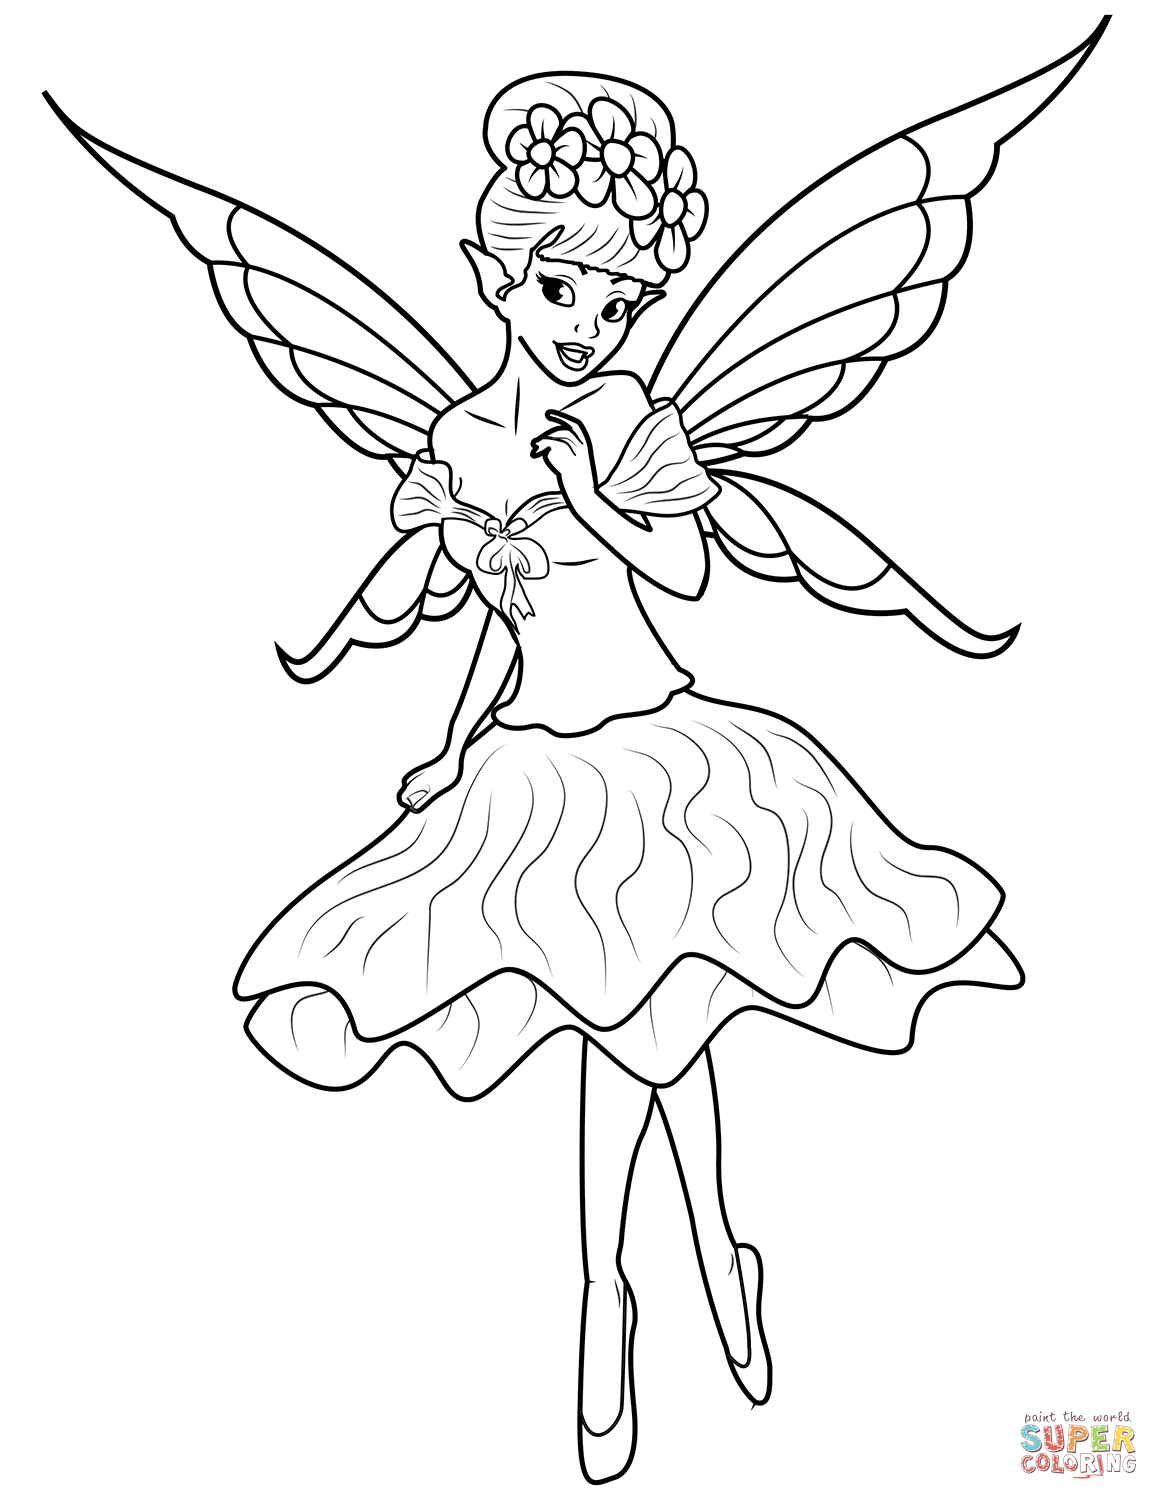 colouring pages of princesses and fairies colouring pages of princesses and fairies of pages colouring fairies princesses and